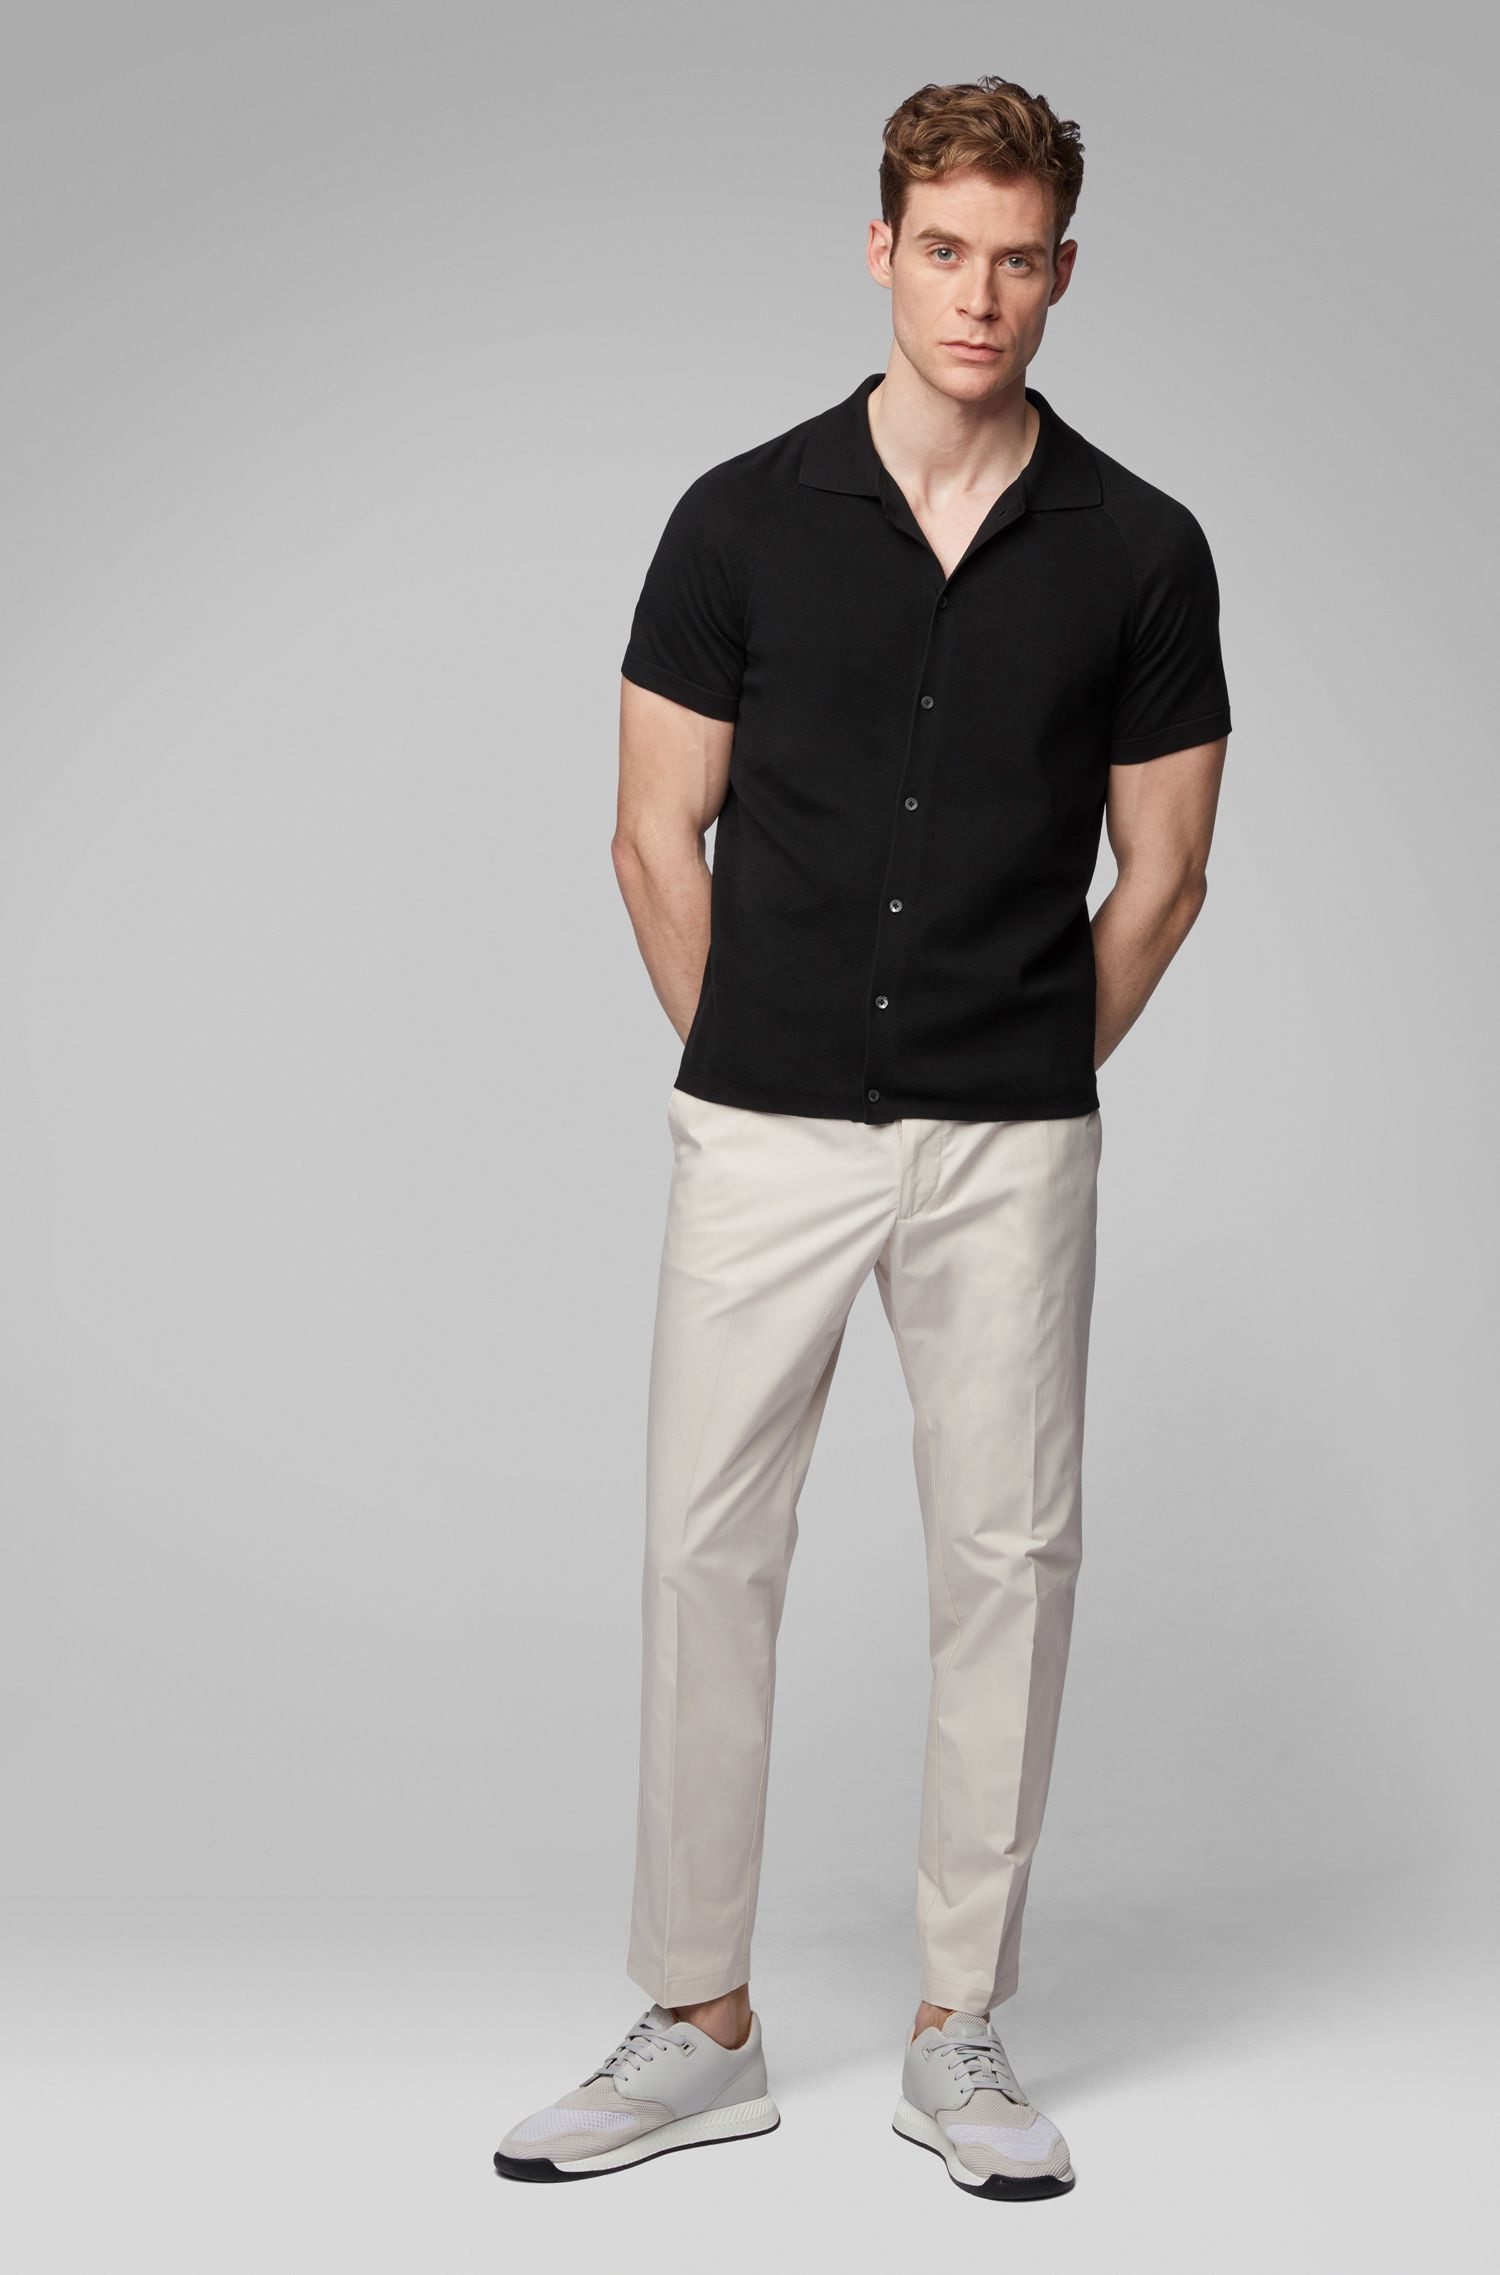 Short-sleeved knitted cardigan in micro-structured cotton, Black